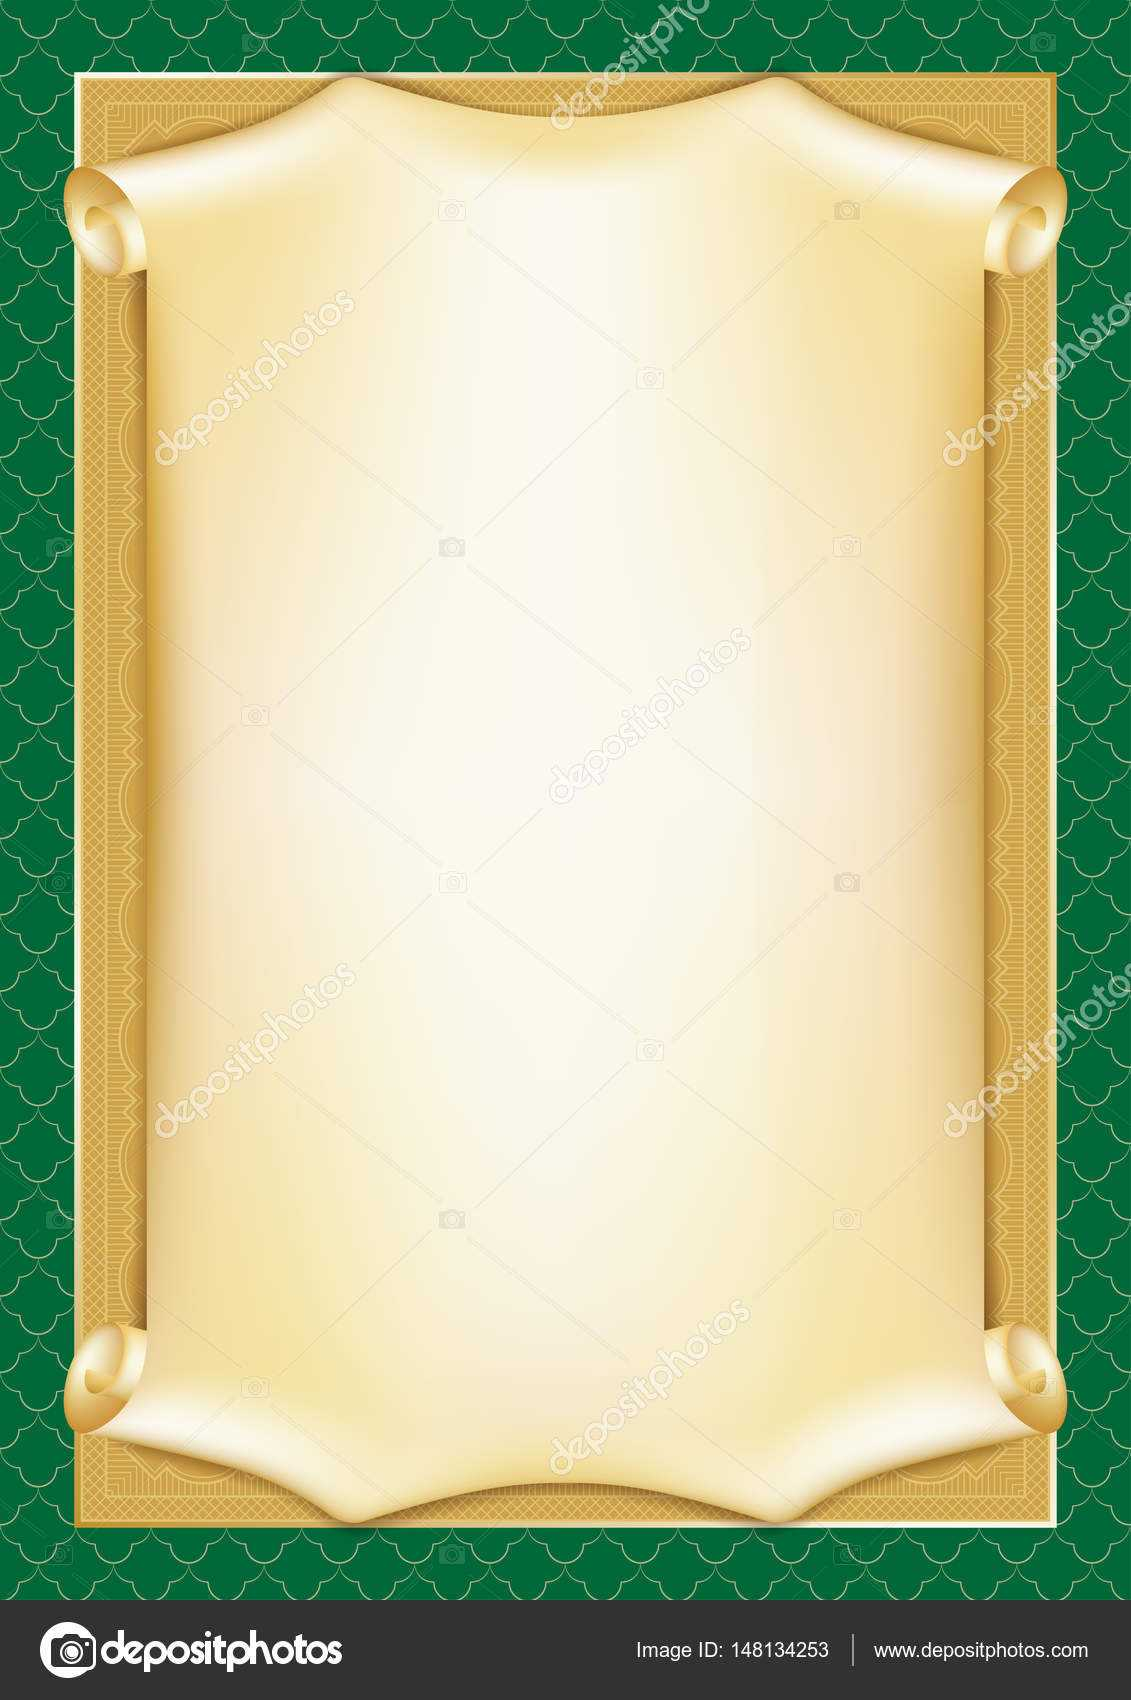 Template For Diploma, Certificate, Card With Scroll And Pertaining To Scroll Certificate Templates